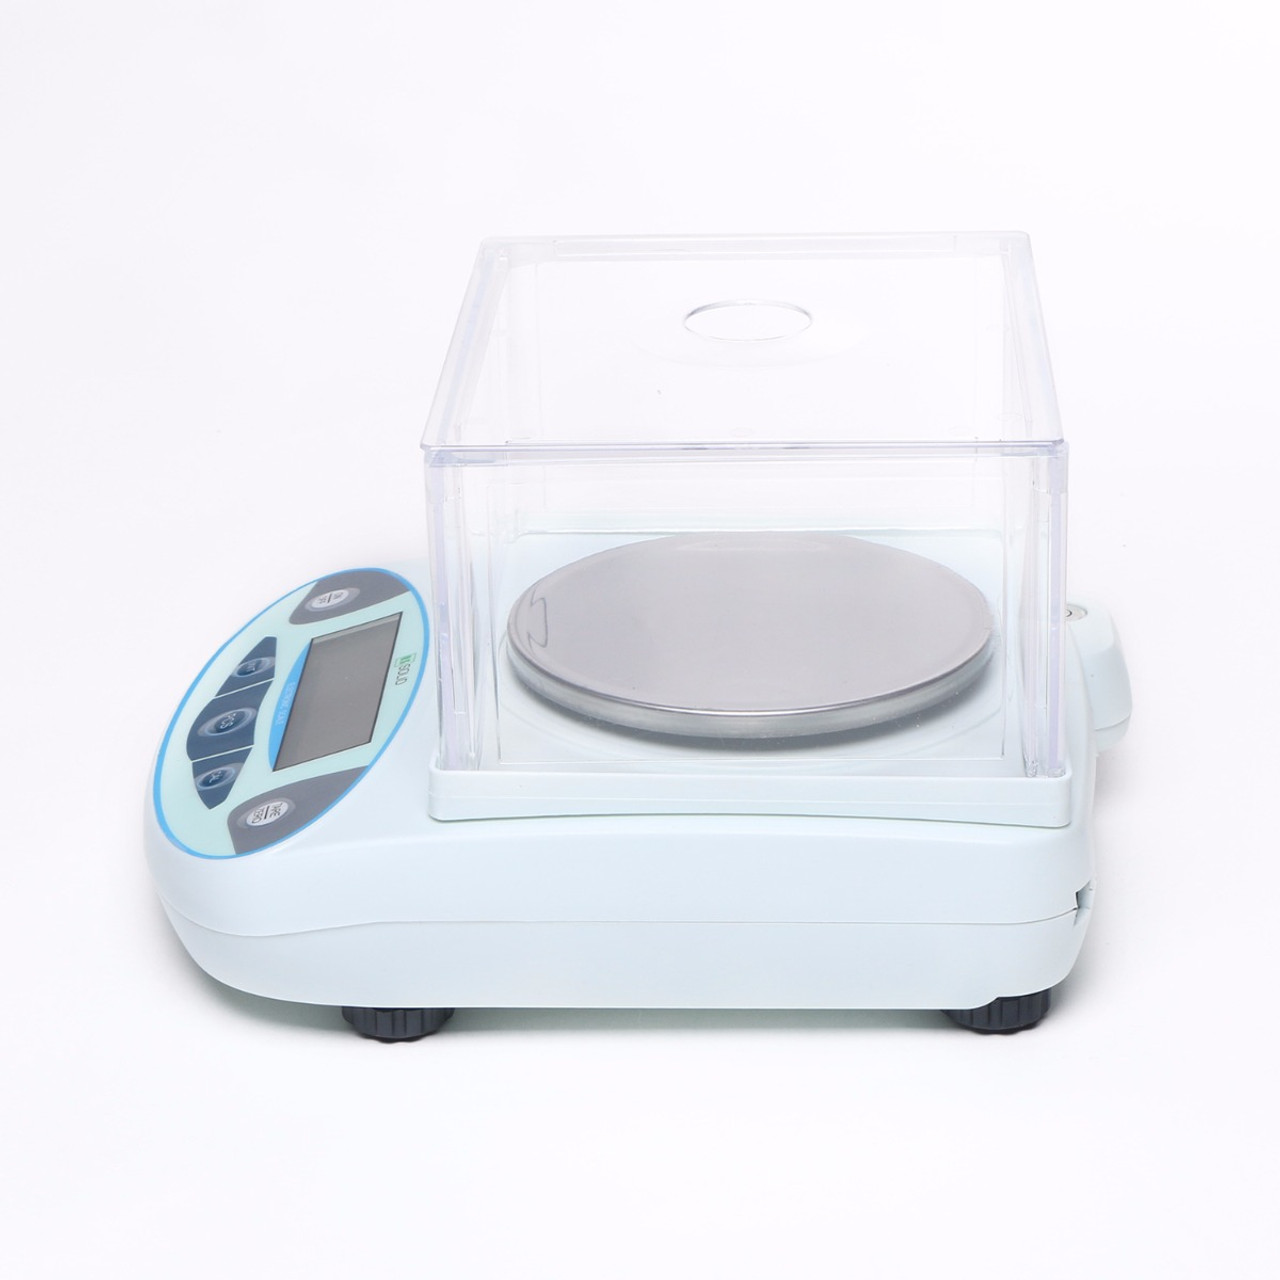 U.S. Solid 200g x 0.01 g Lab Scale, 0.01 g Digital Analytical Balance